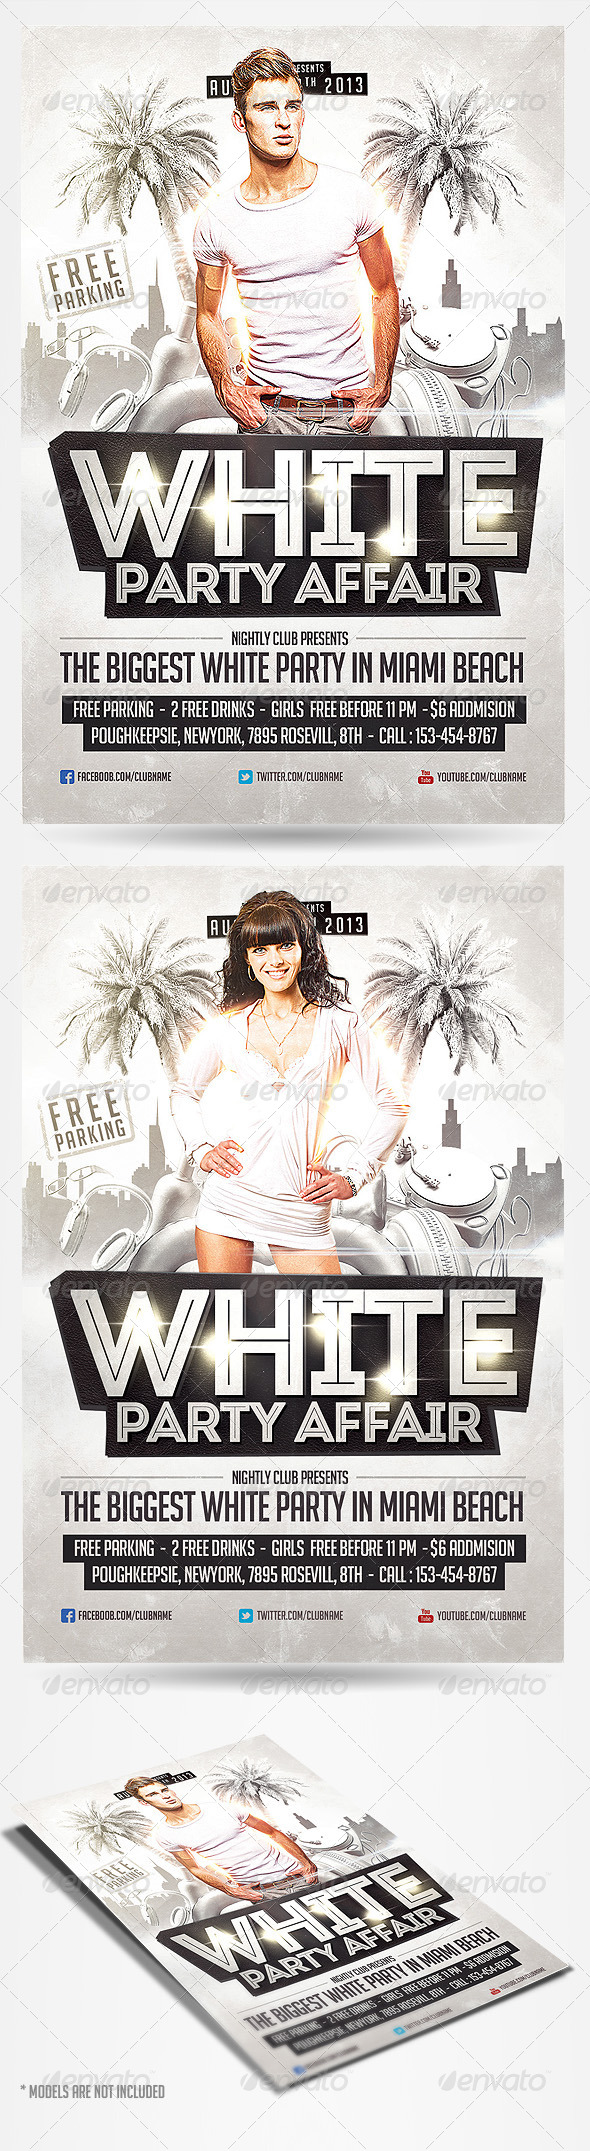 White Party Affair Party Template - Clubs & Parties Events